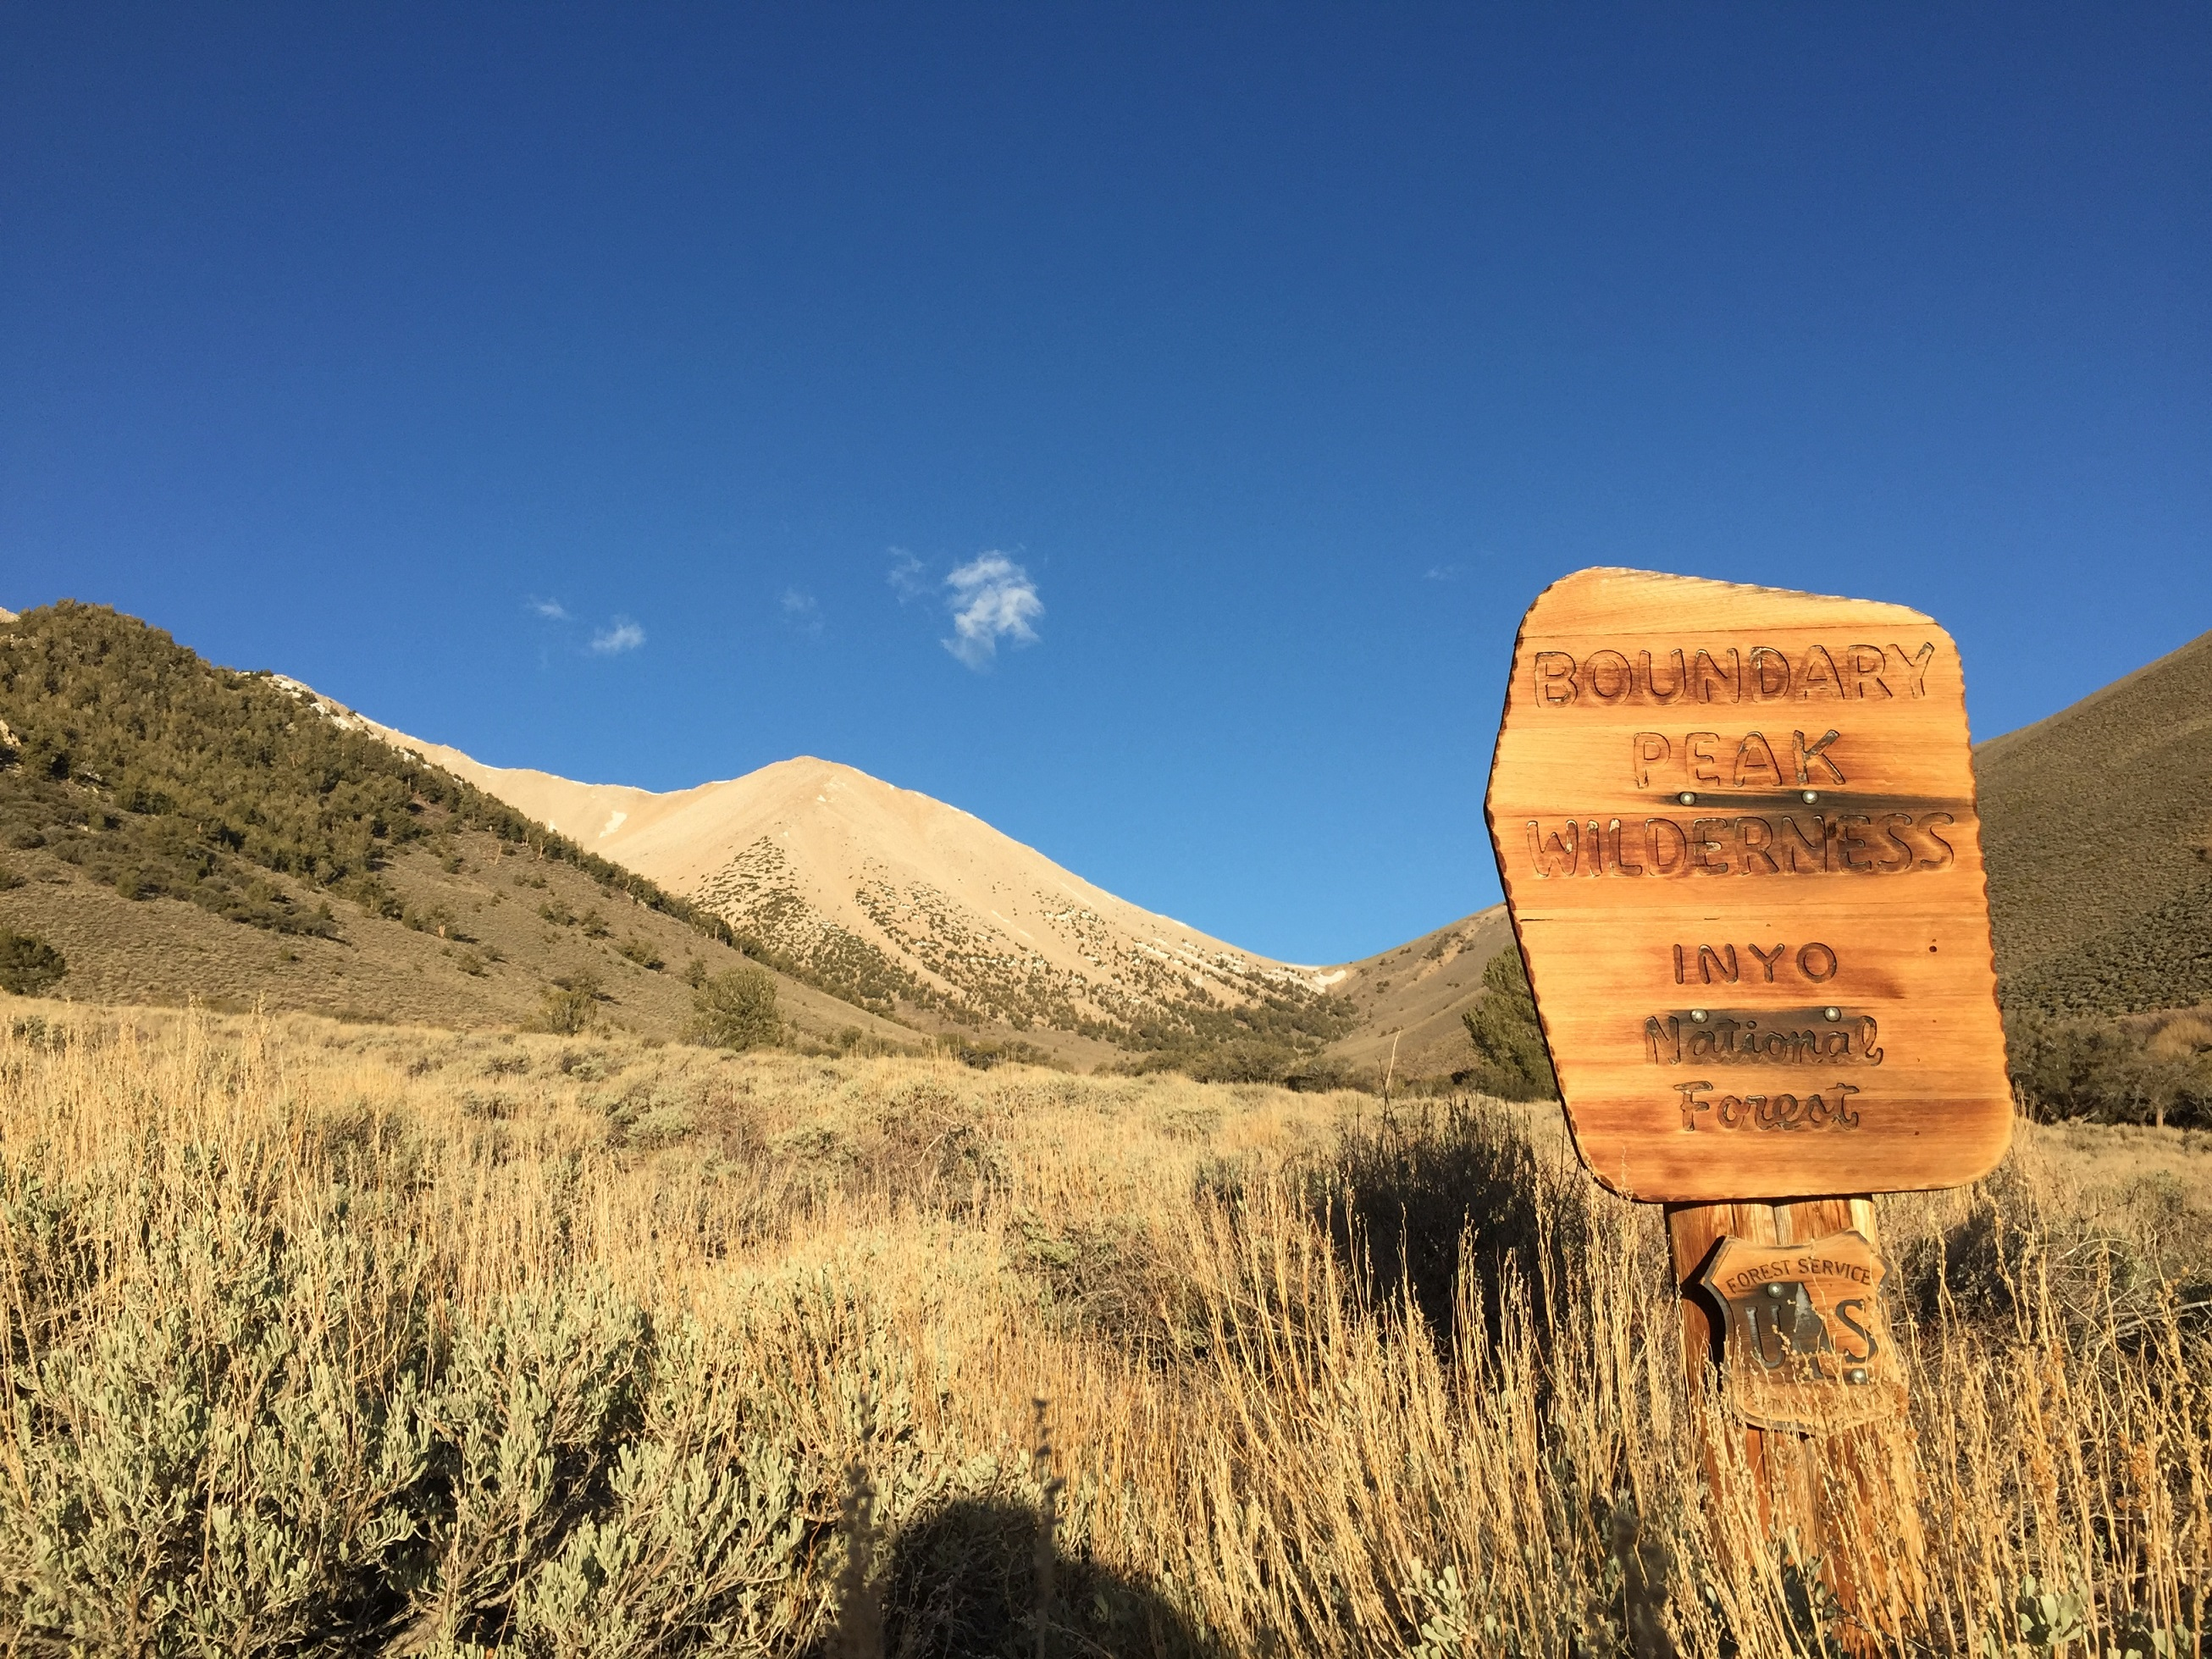 View_west_up_Trail_Canyon_at_the_sign_marking_the_edge_of_the_Boundary_Peak_Wilderness_in_Esmeralda_County_Nevada